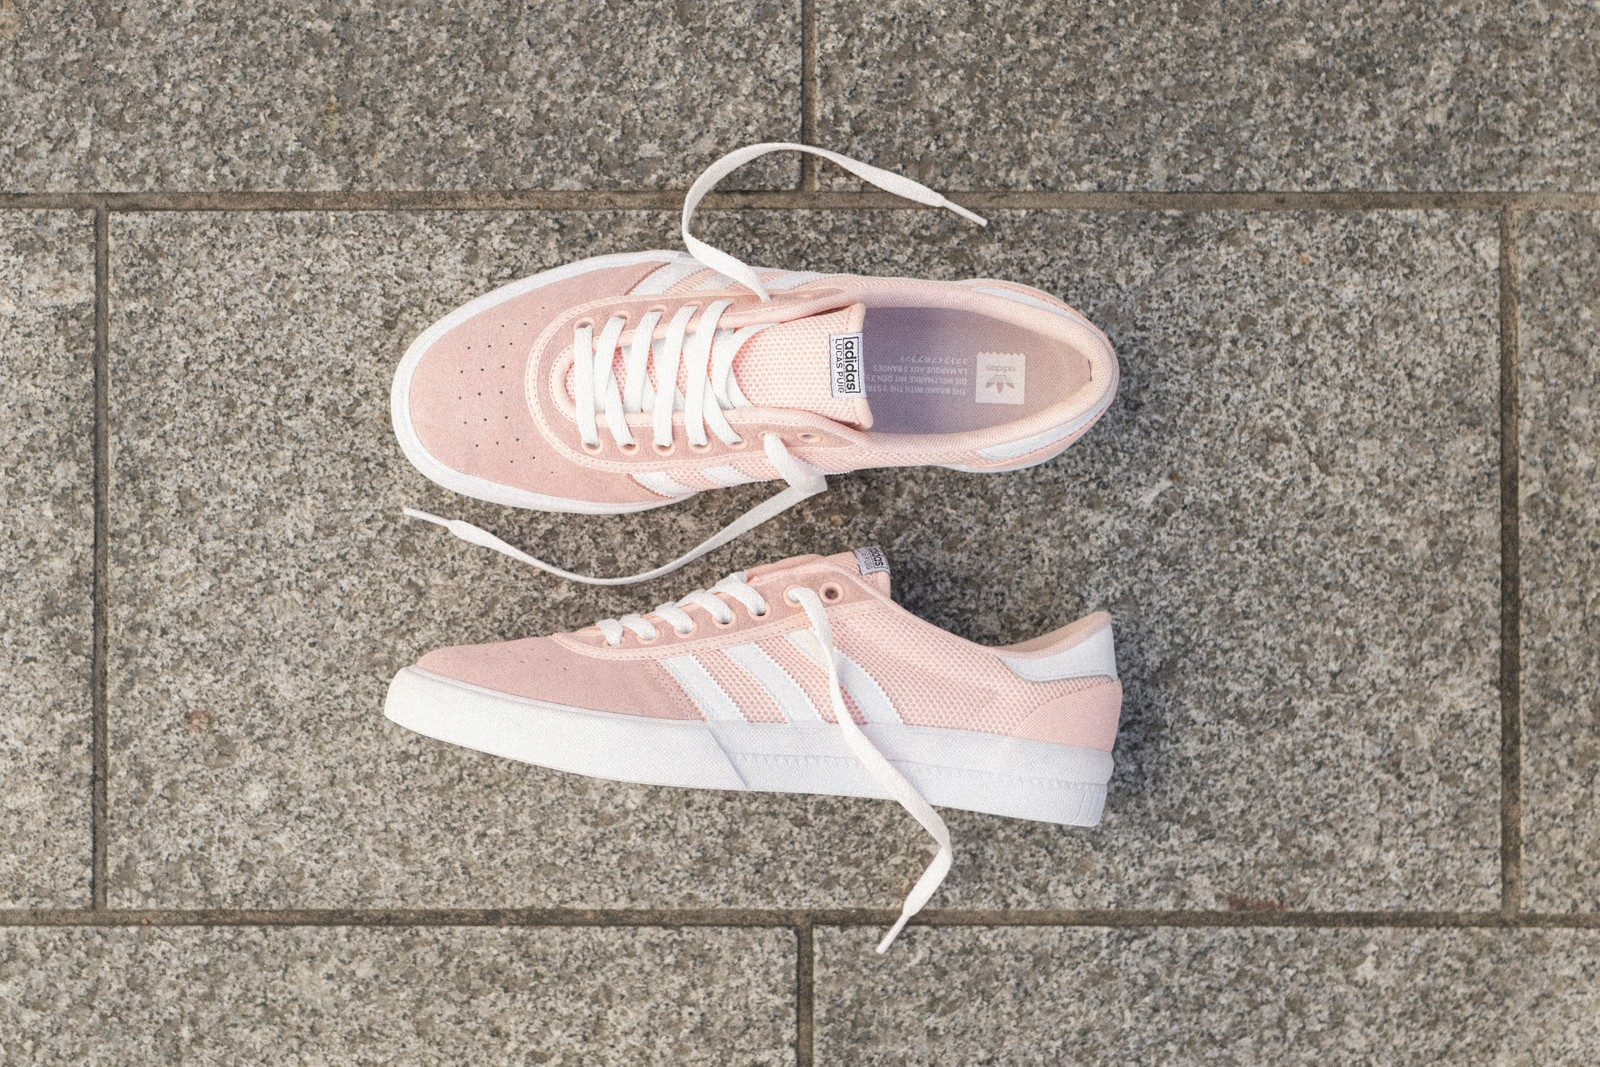 ADIDAS SKATEBOARDING'S LUCAS PREMIERE COLORWAYS INSPIRED BY COASTAL FRANCE